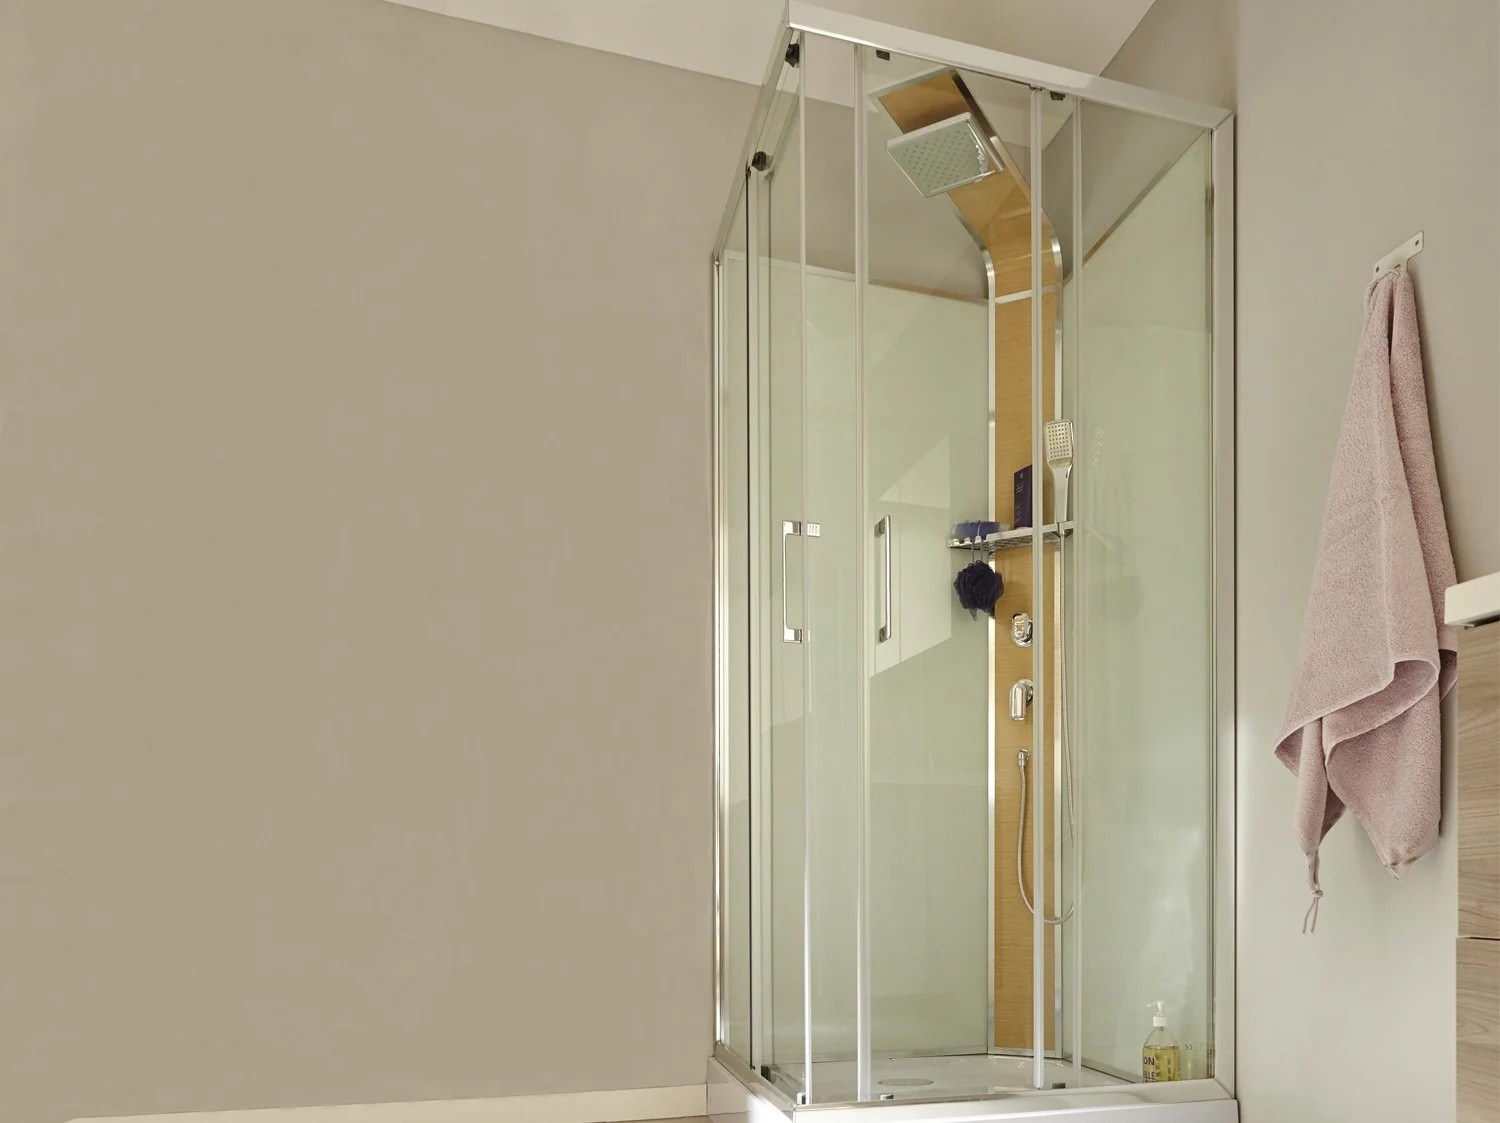 Comment Installer Une Colonne De Douche Installer Une Douche Installer Une Douche Italienne With